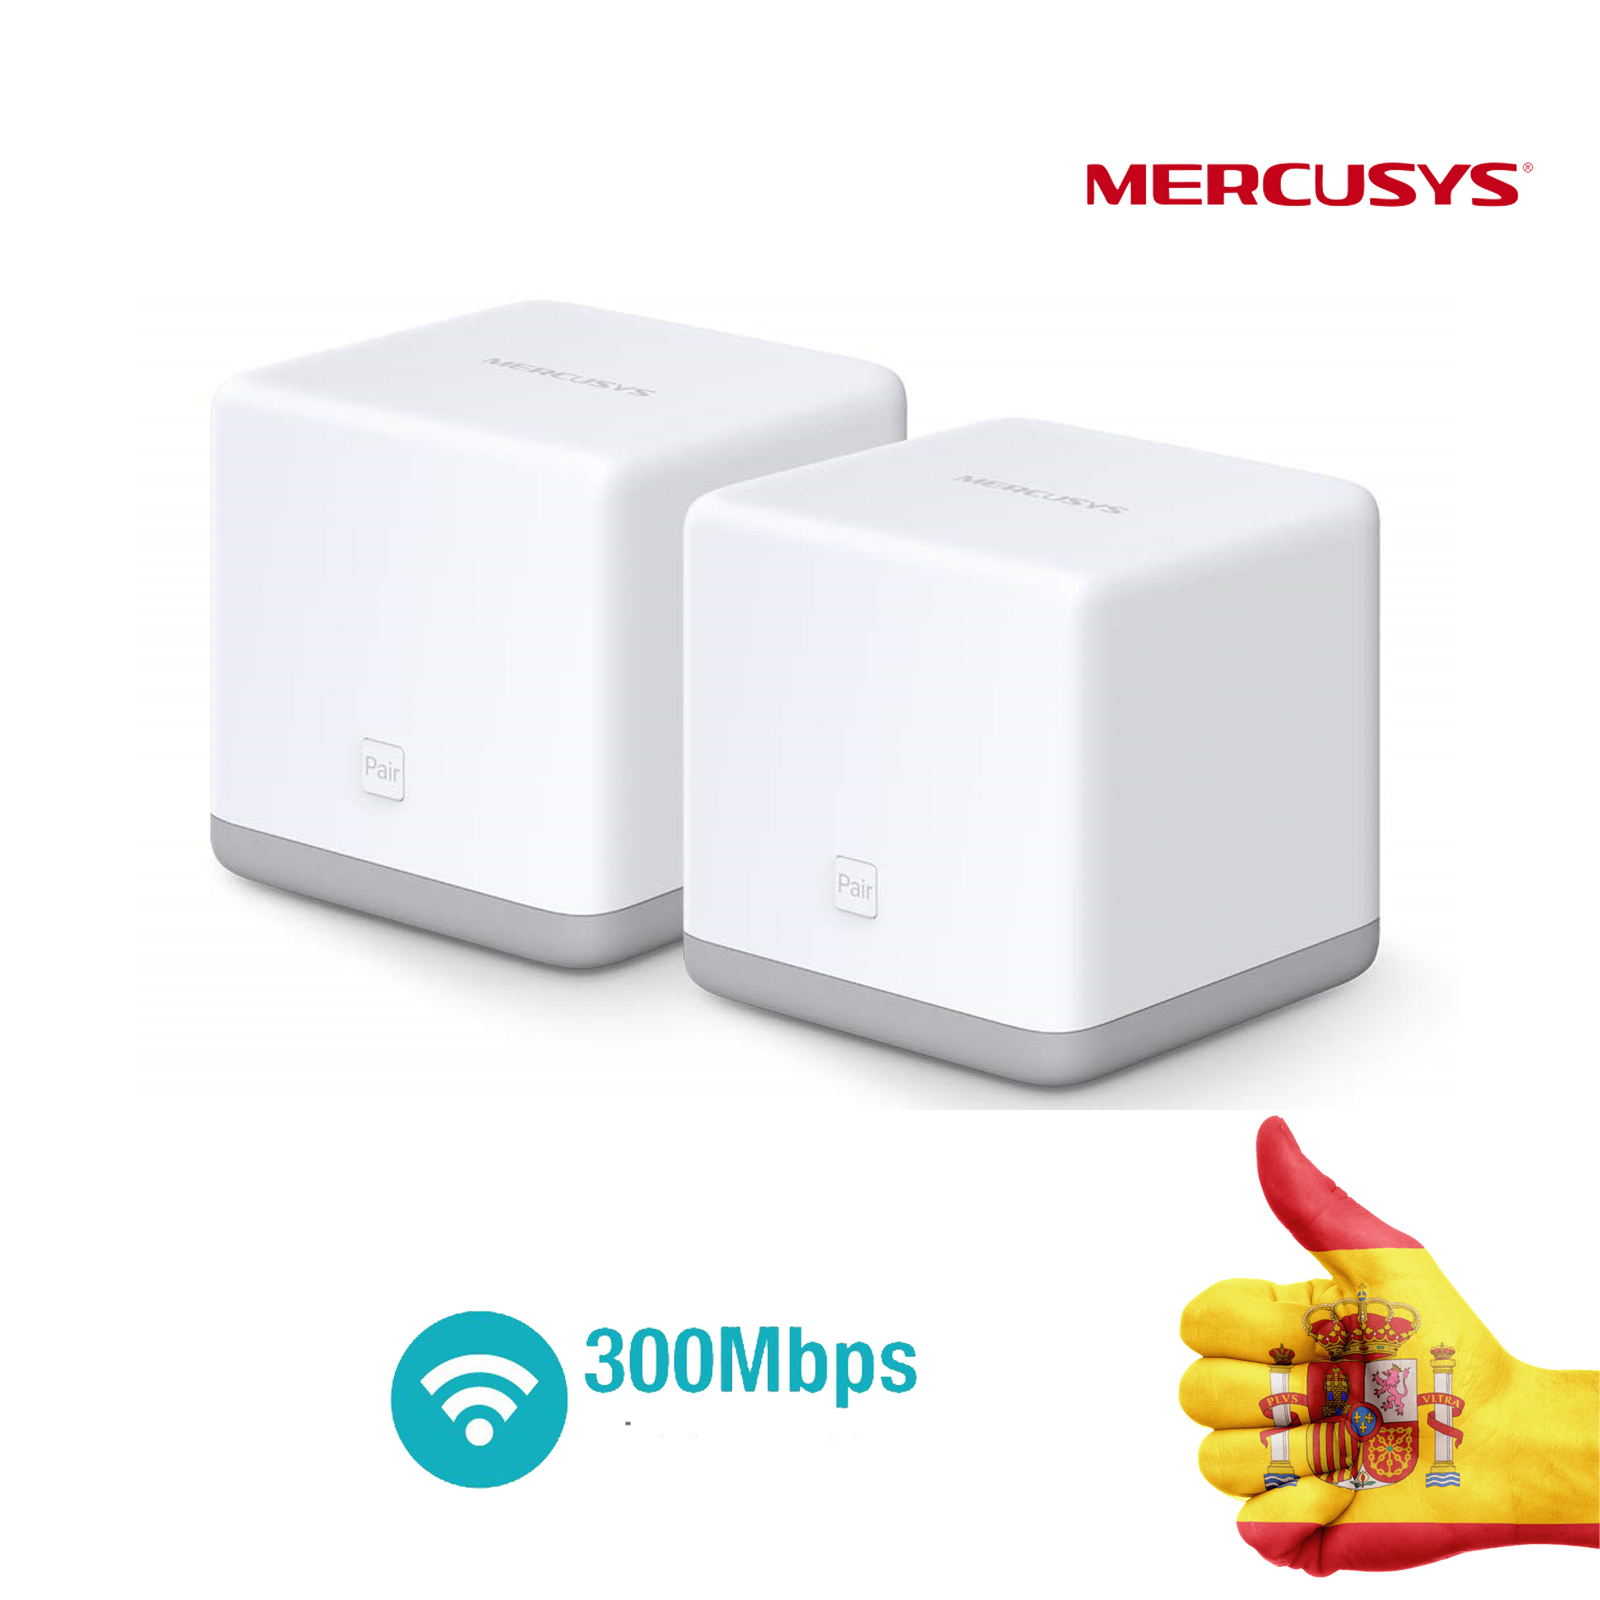 WHOLE HOME MESH WI-FI SYSTEM 300 MBPS MERCUSYS